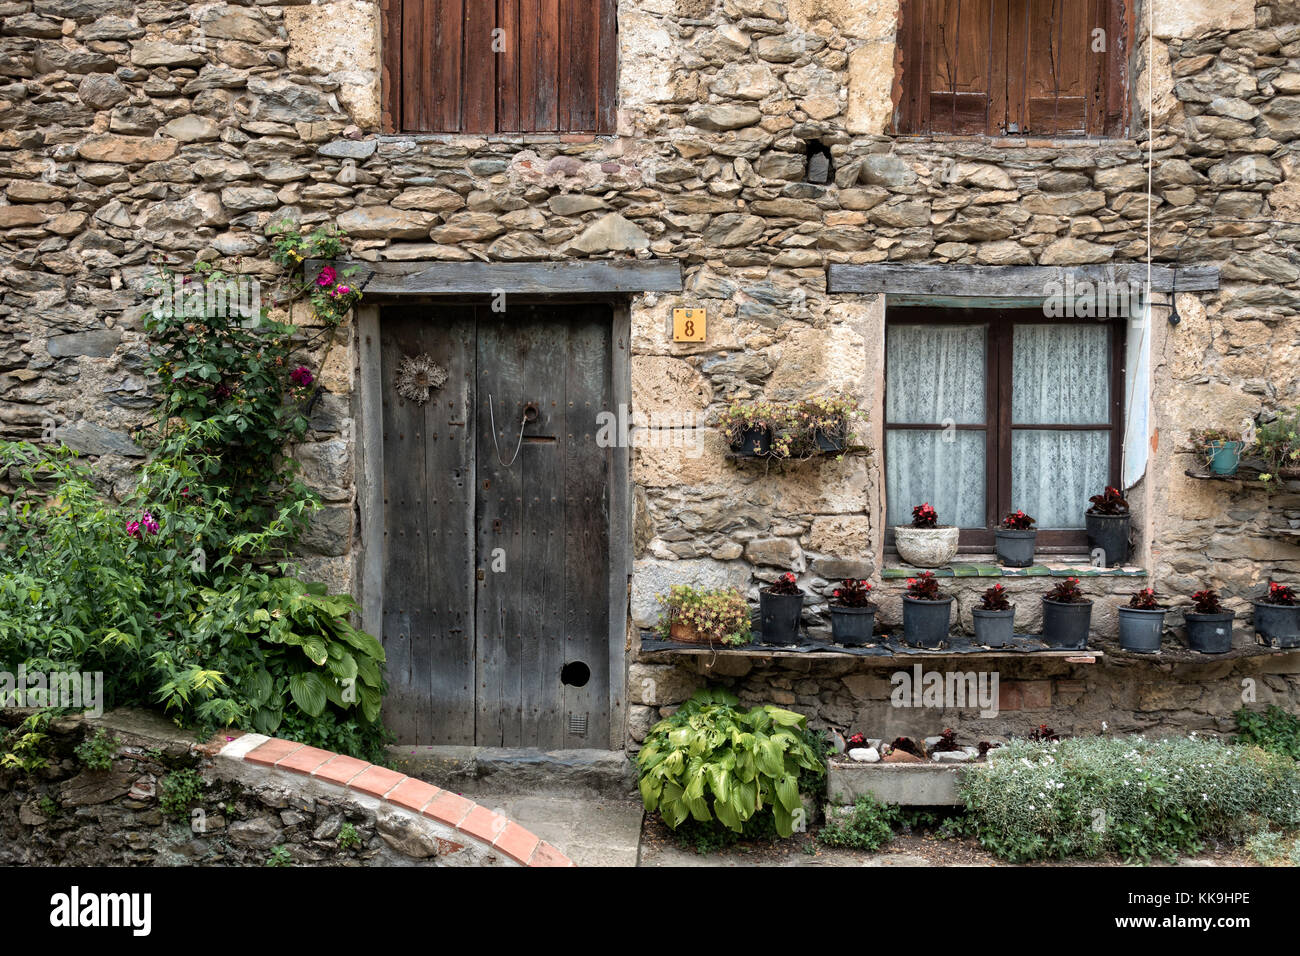 Old stone house.Beget village.Gerona.Catalonia.Spain - Stock Image